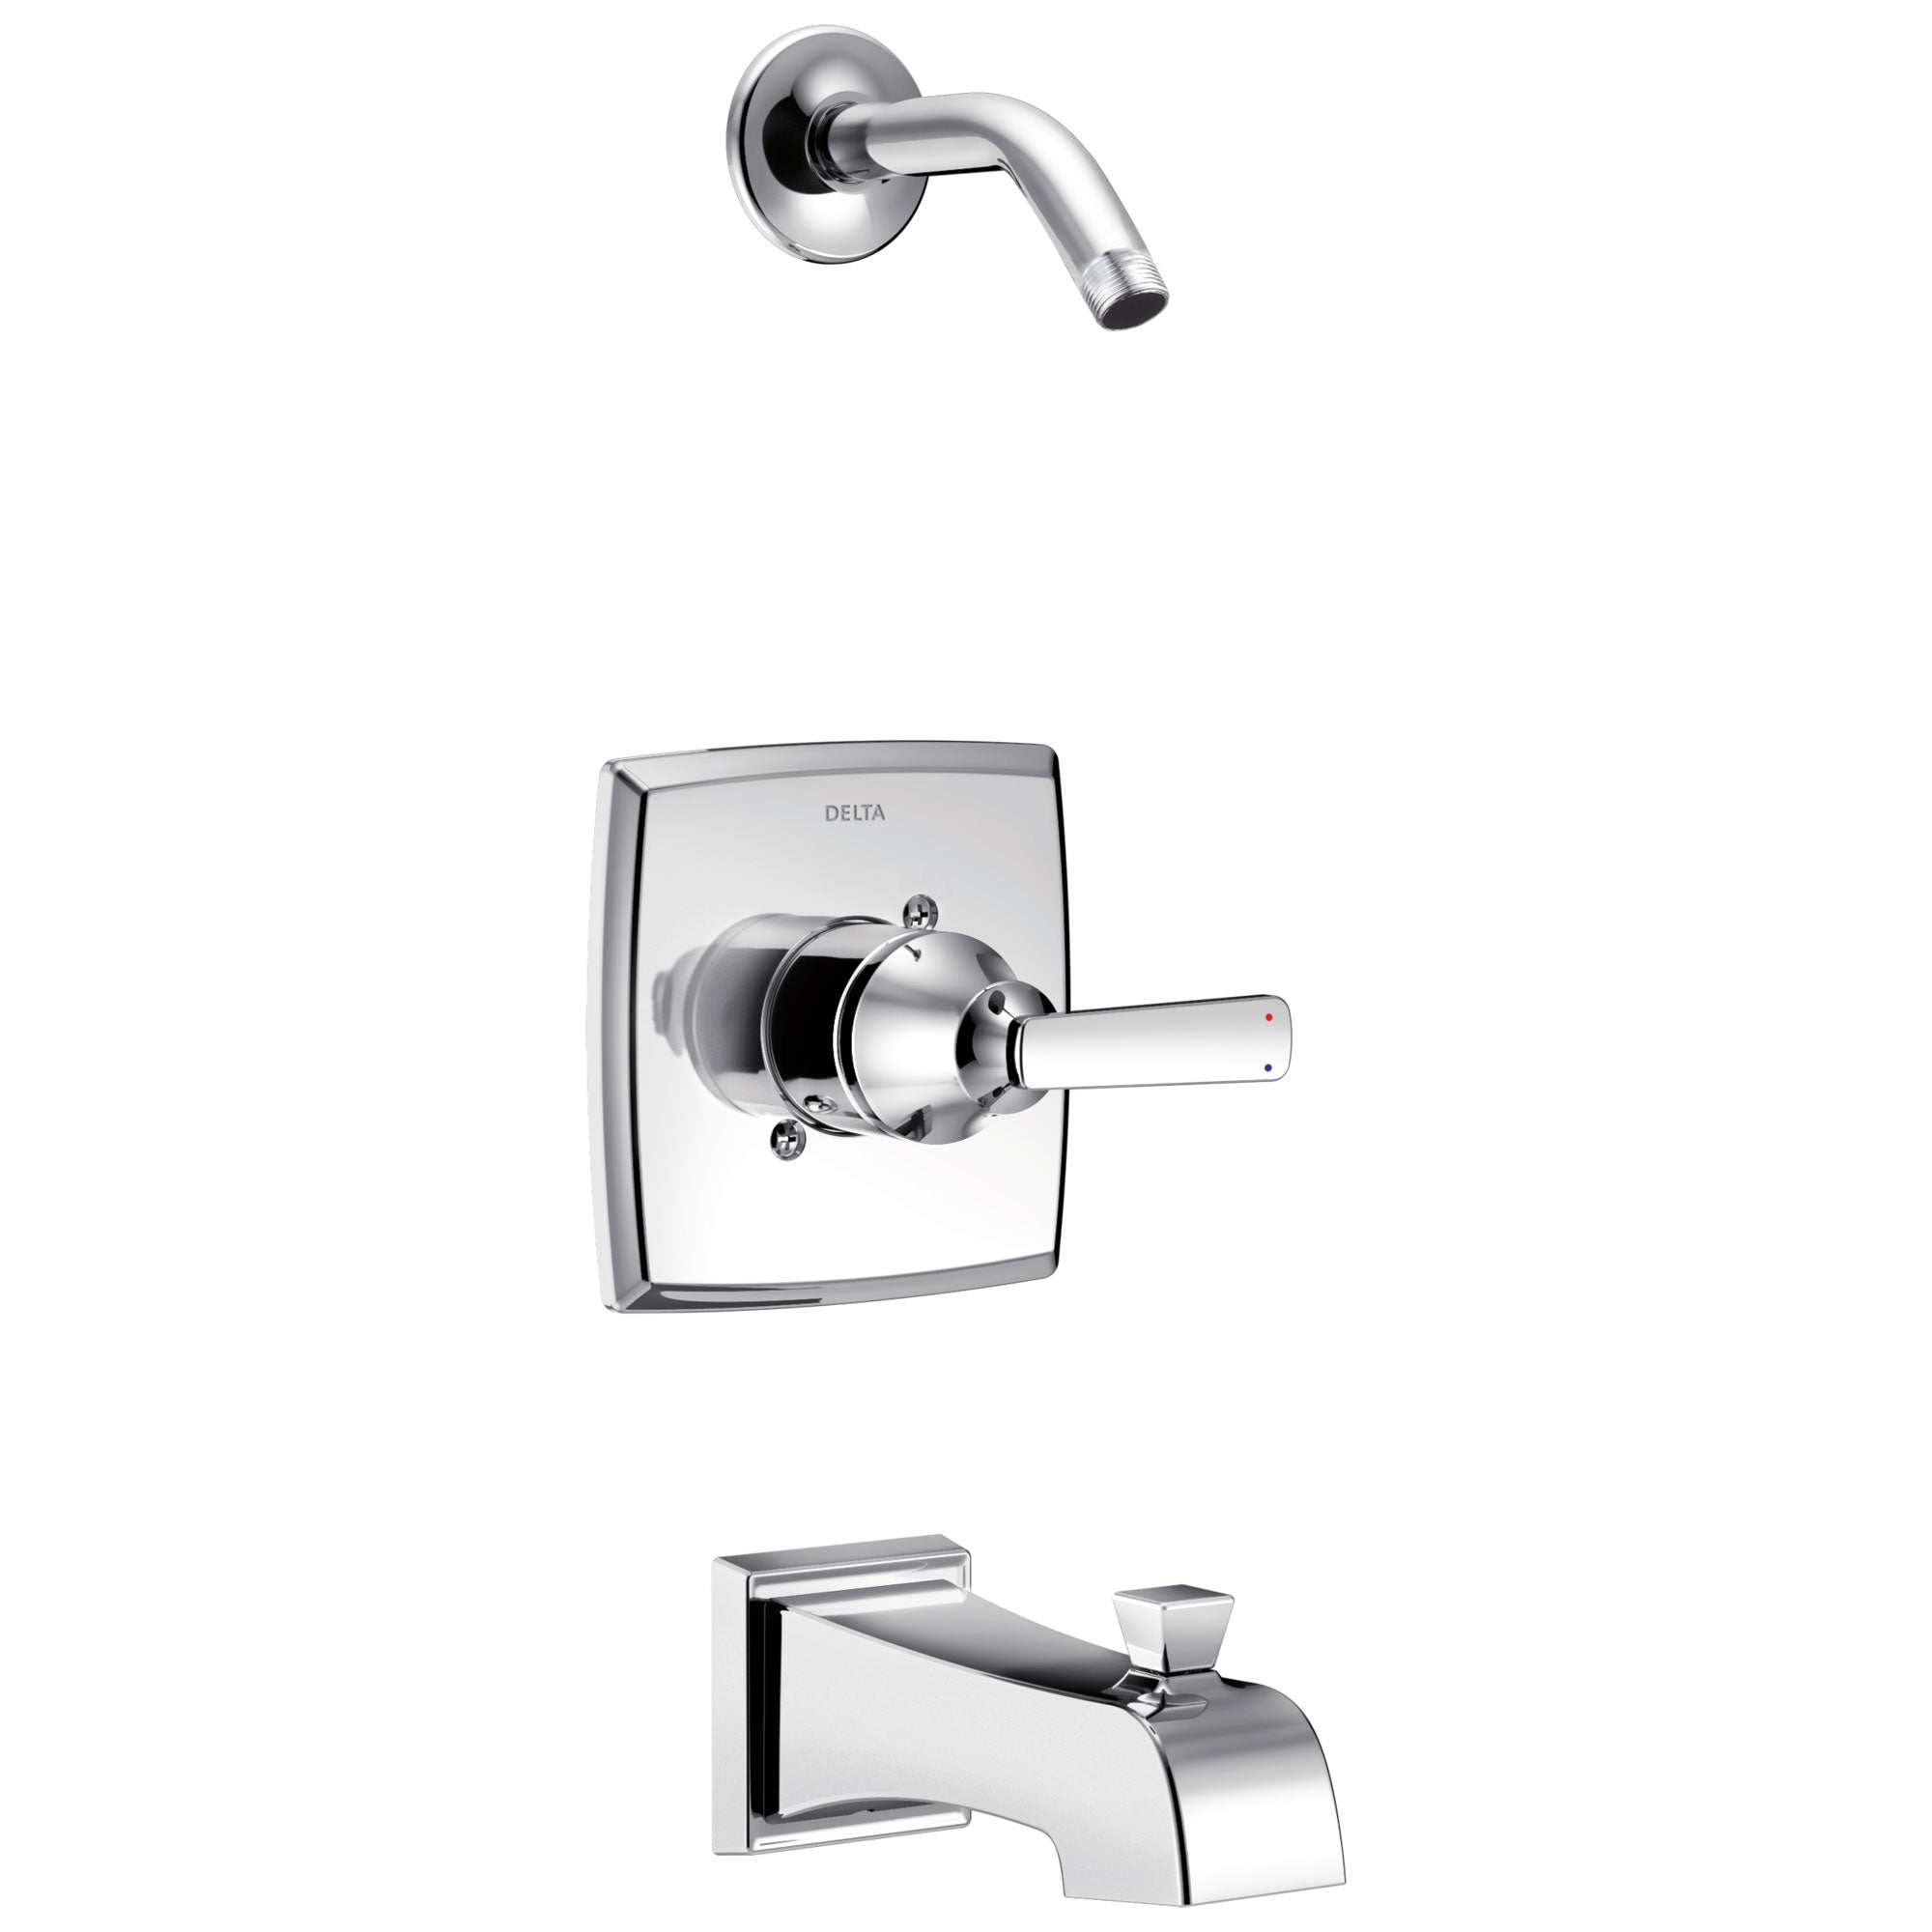 Delta Ashlyn Collection Chrome Monitor 14 Stylish Tub and Shower Combination Faucet Trim - Less Showerhead (Valve Sold Separately) DT14464LHD